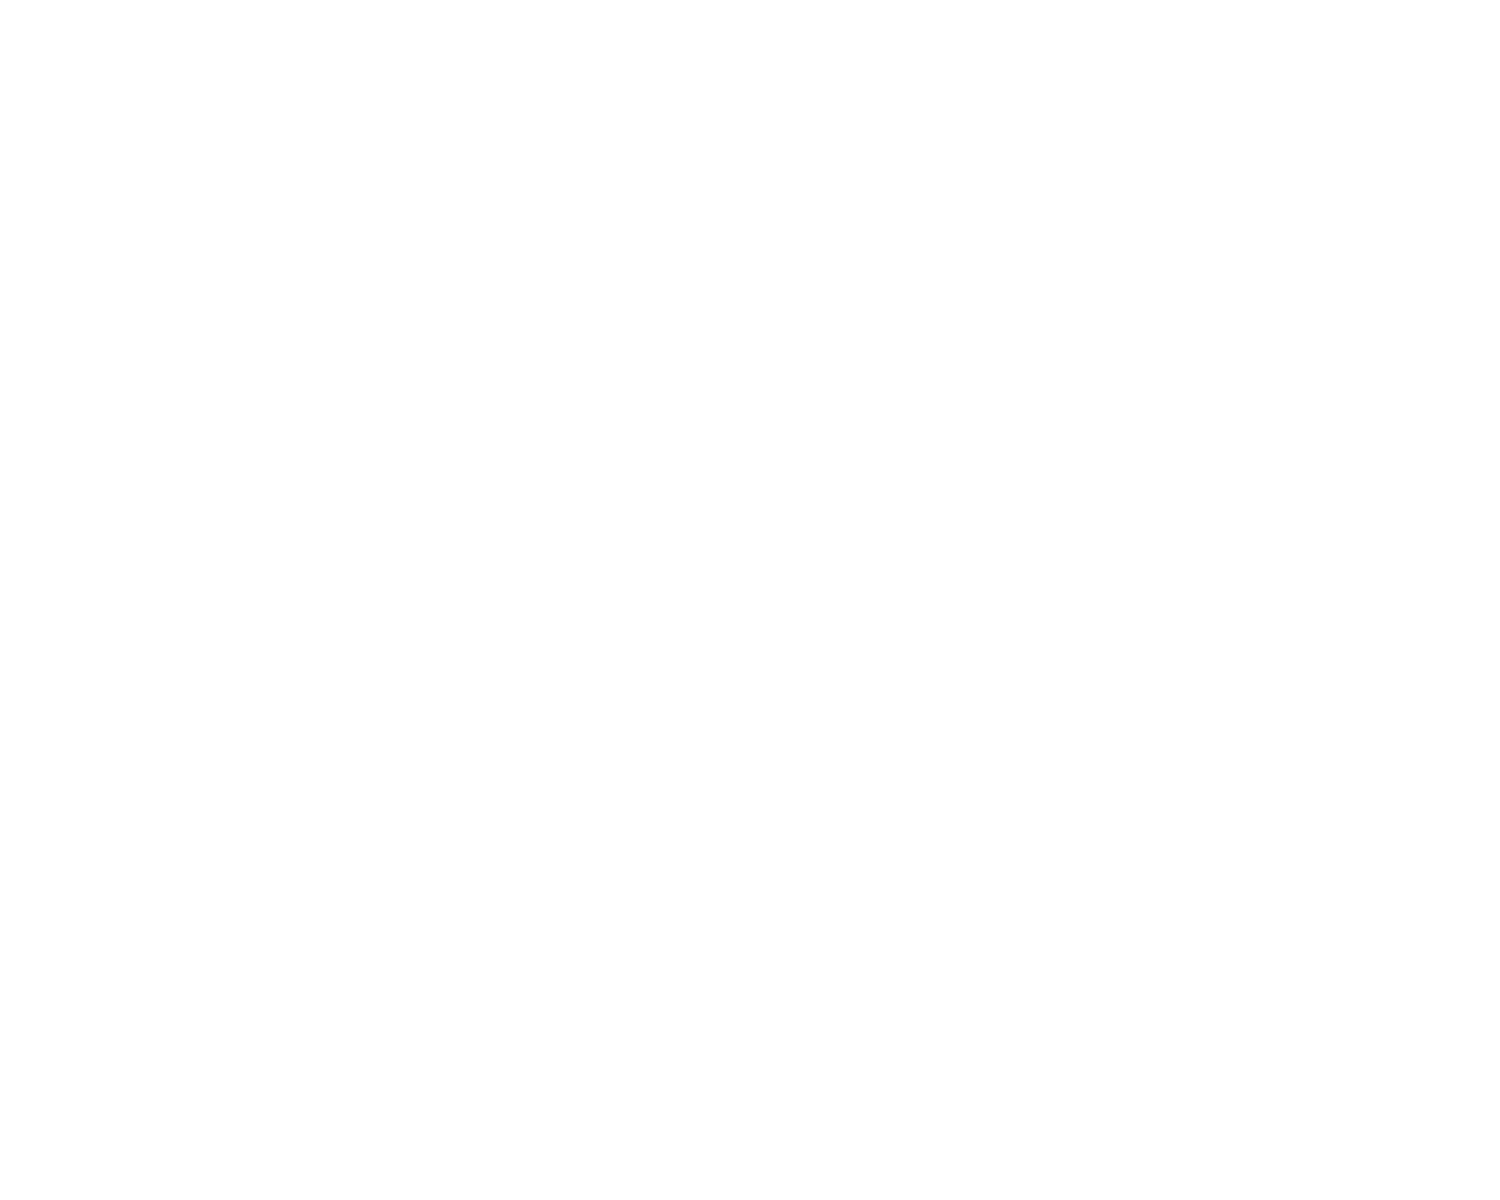 Tilleda Falls Campground - Small on Purpose